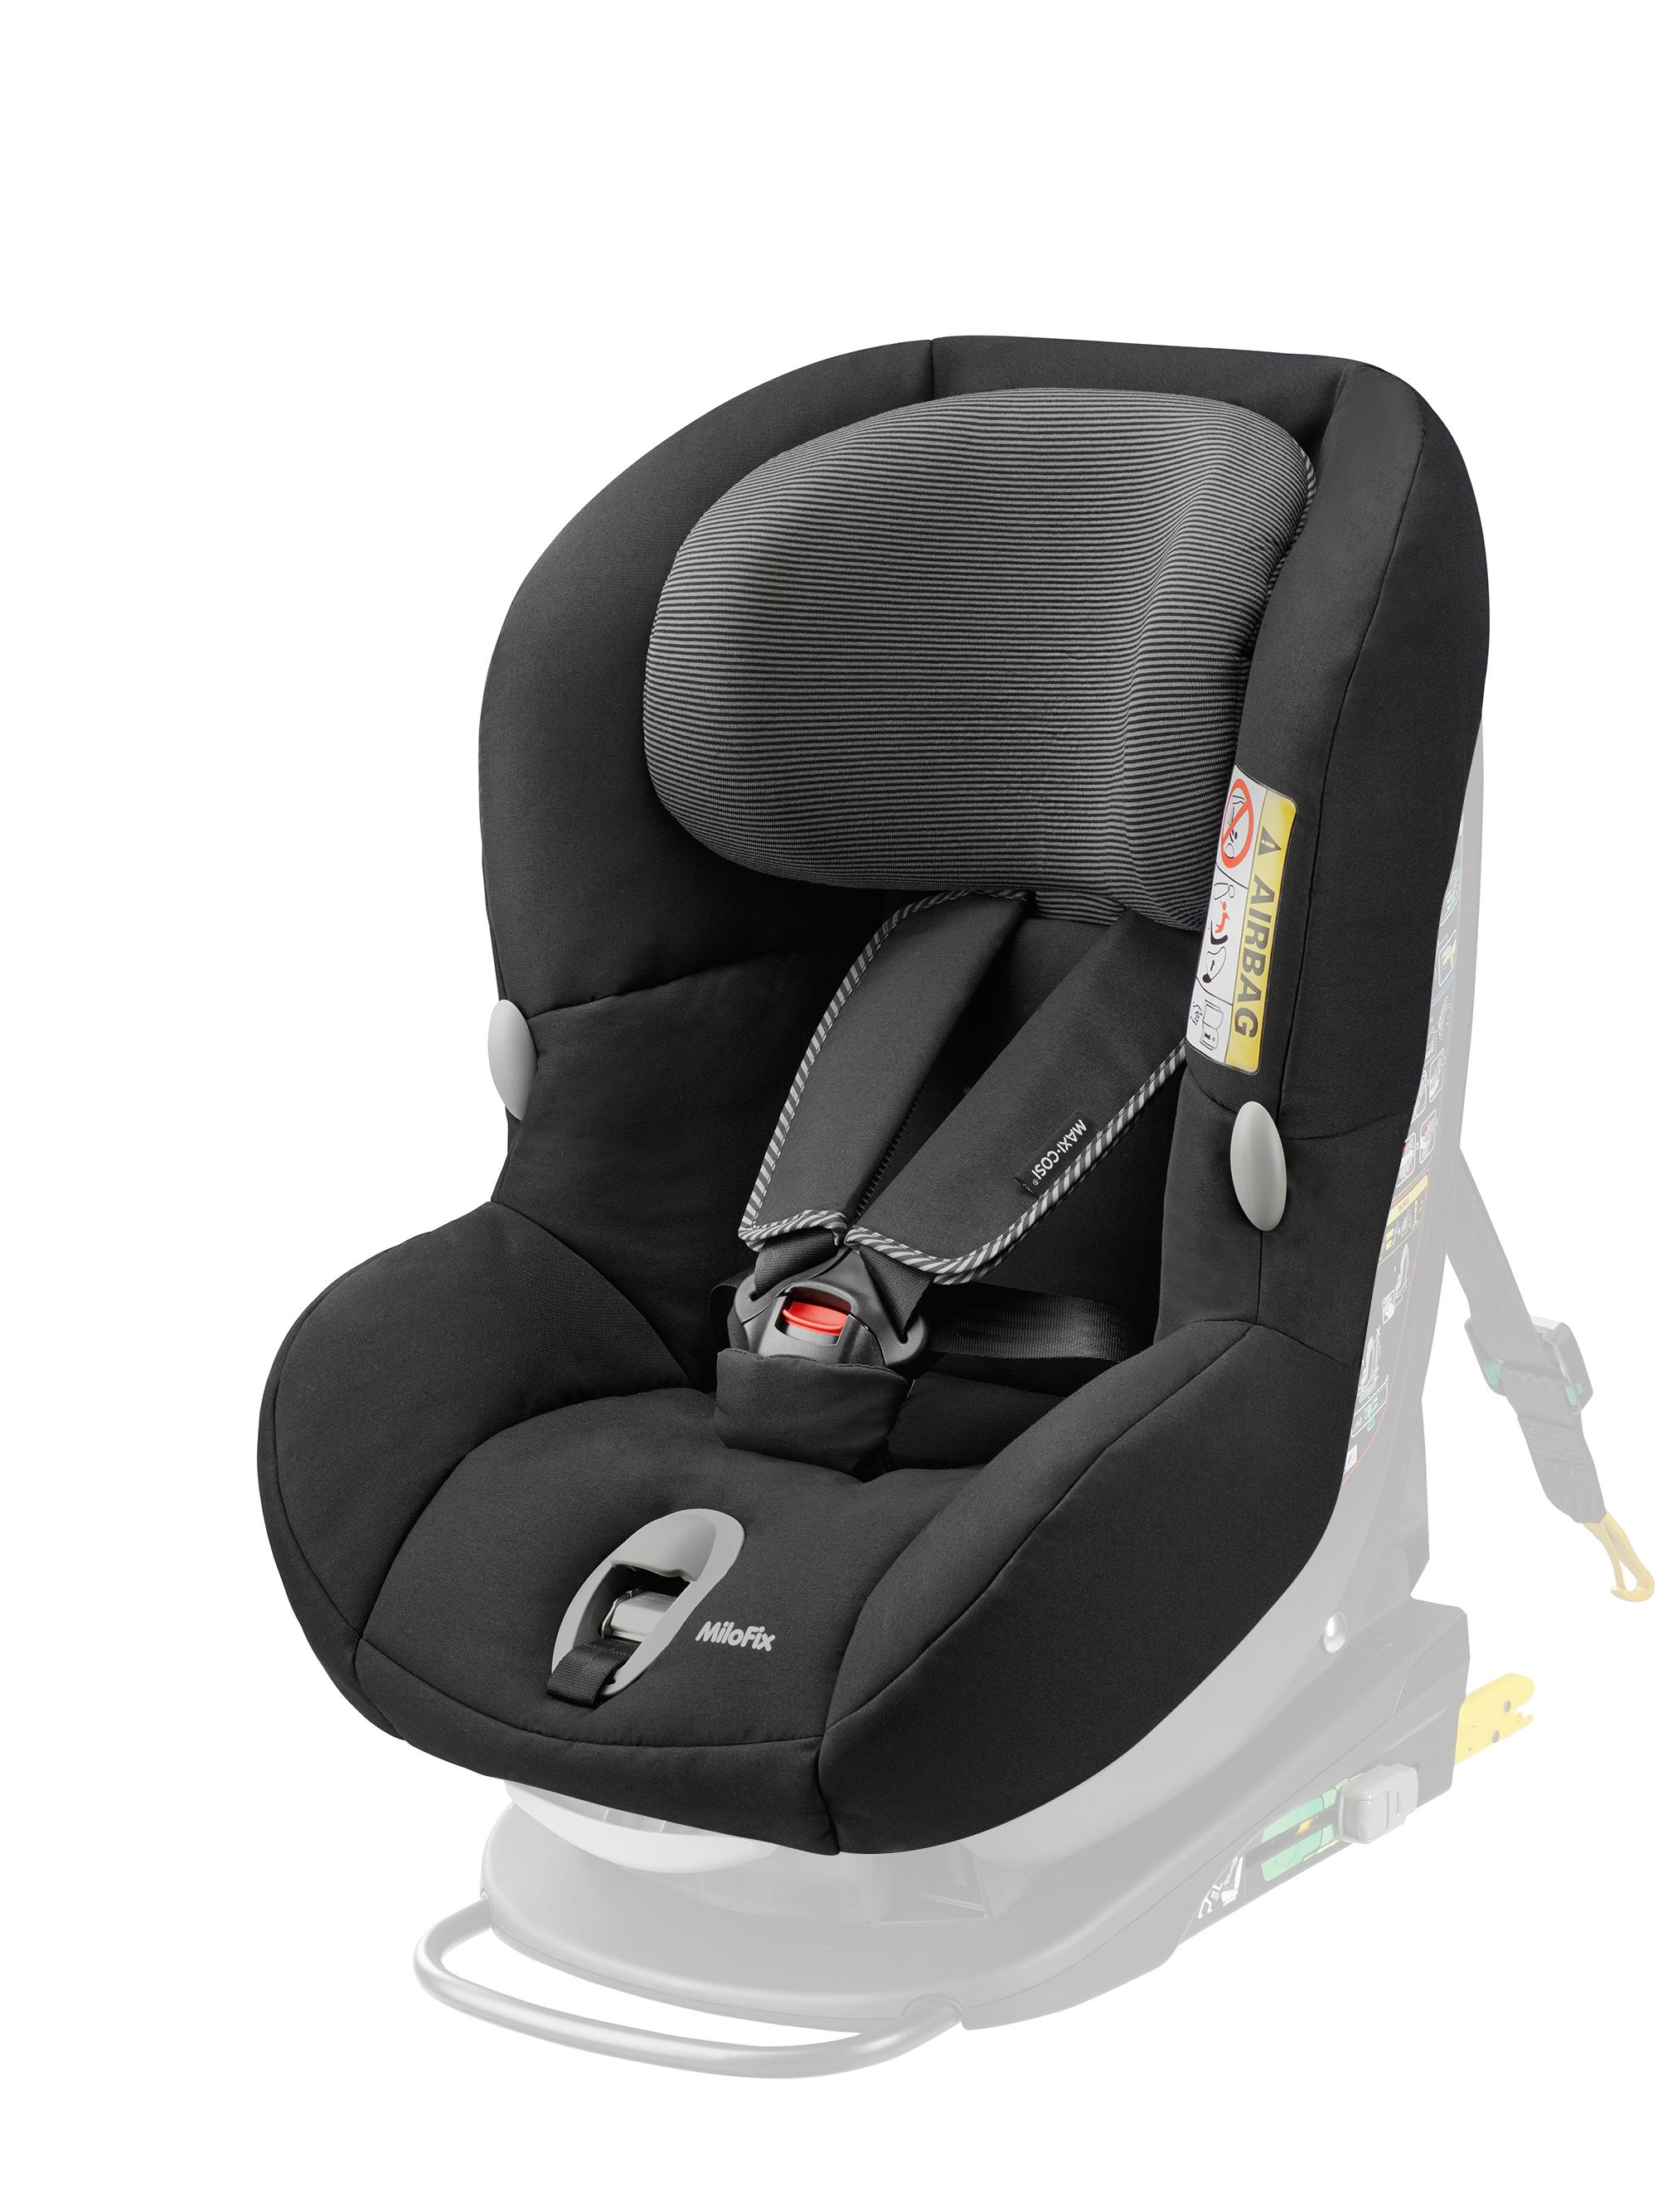 maxi cosi milofix car seat replacement cover black raven. Black Bedroom Furniture Sets. Home Design Ideas